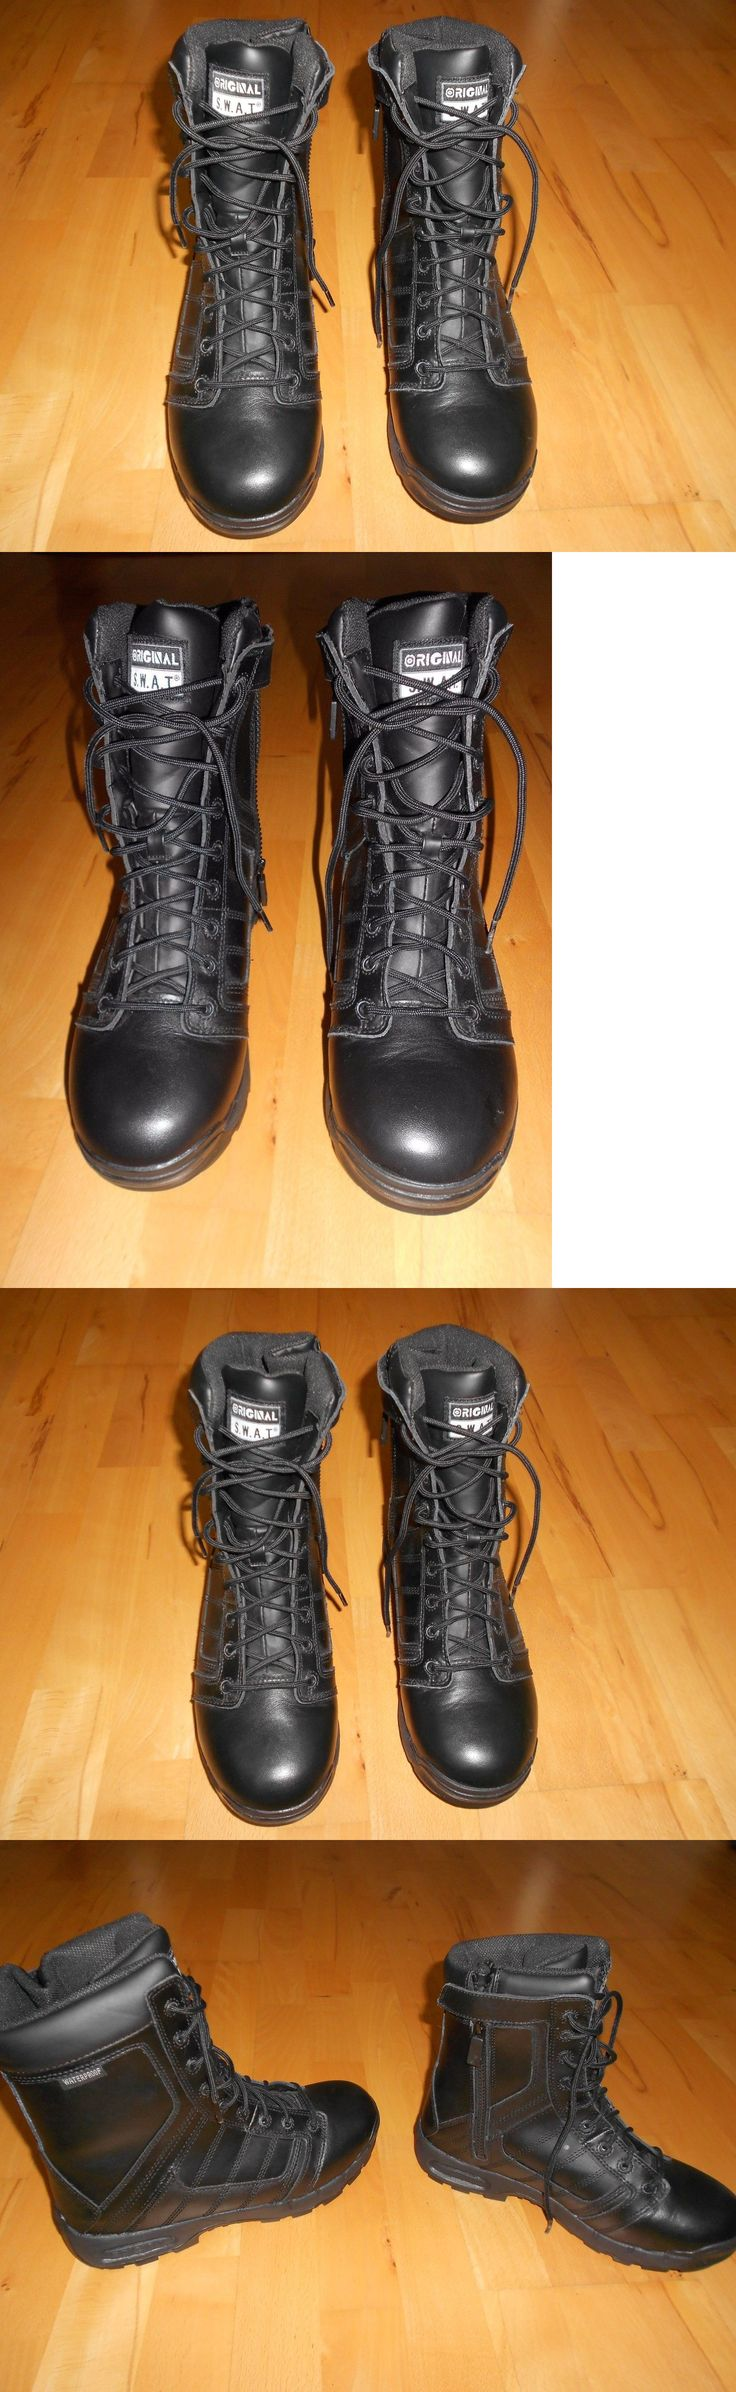 Tactical Footwear 177897: Men S 10 Original S.W.A.T 123401 Metro Air 9 Side Zip Thinsulate Tactical-Boot -> BUY IT NOW ONLY: $57.99 on eBay!